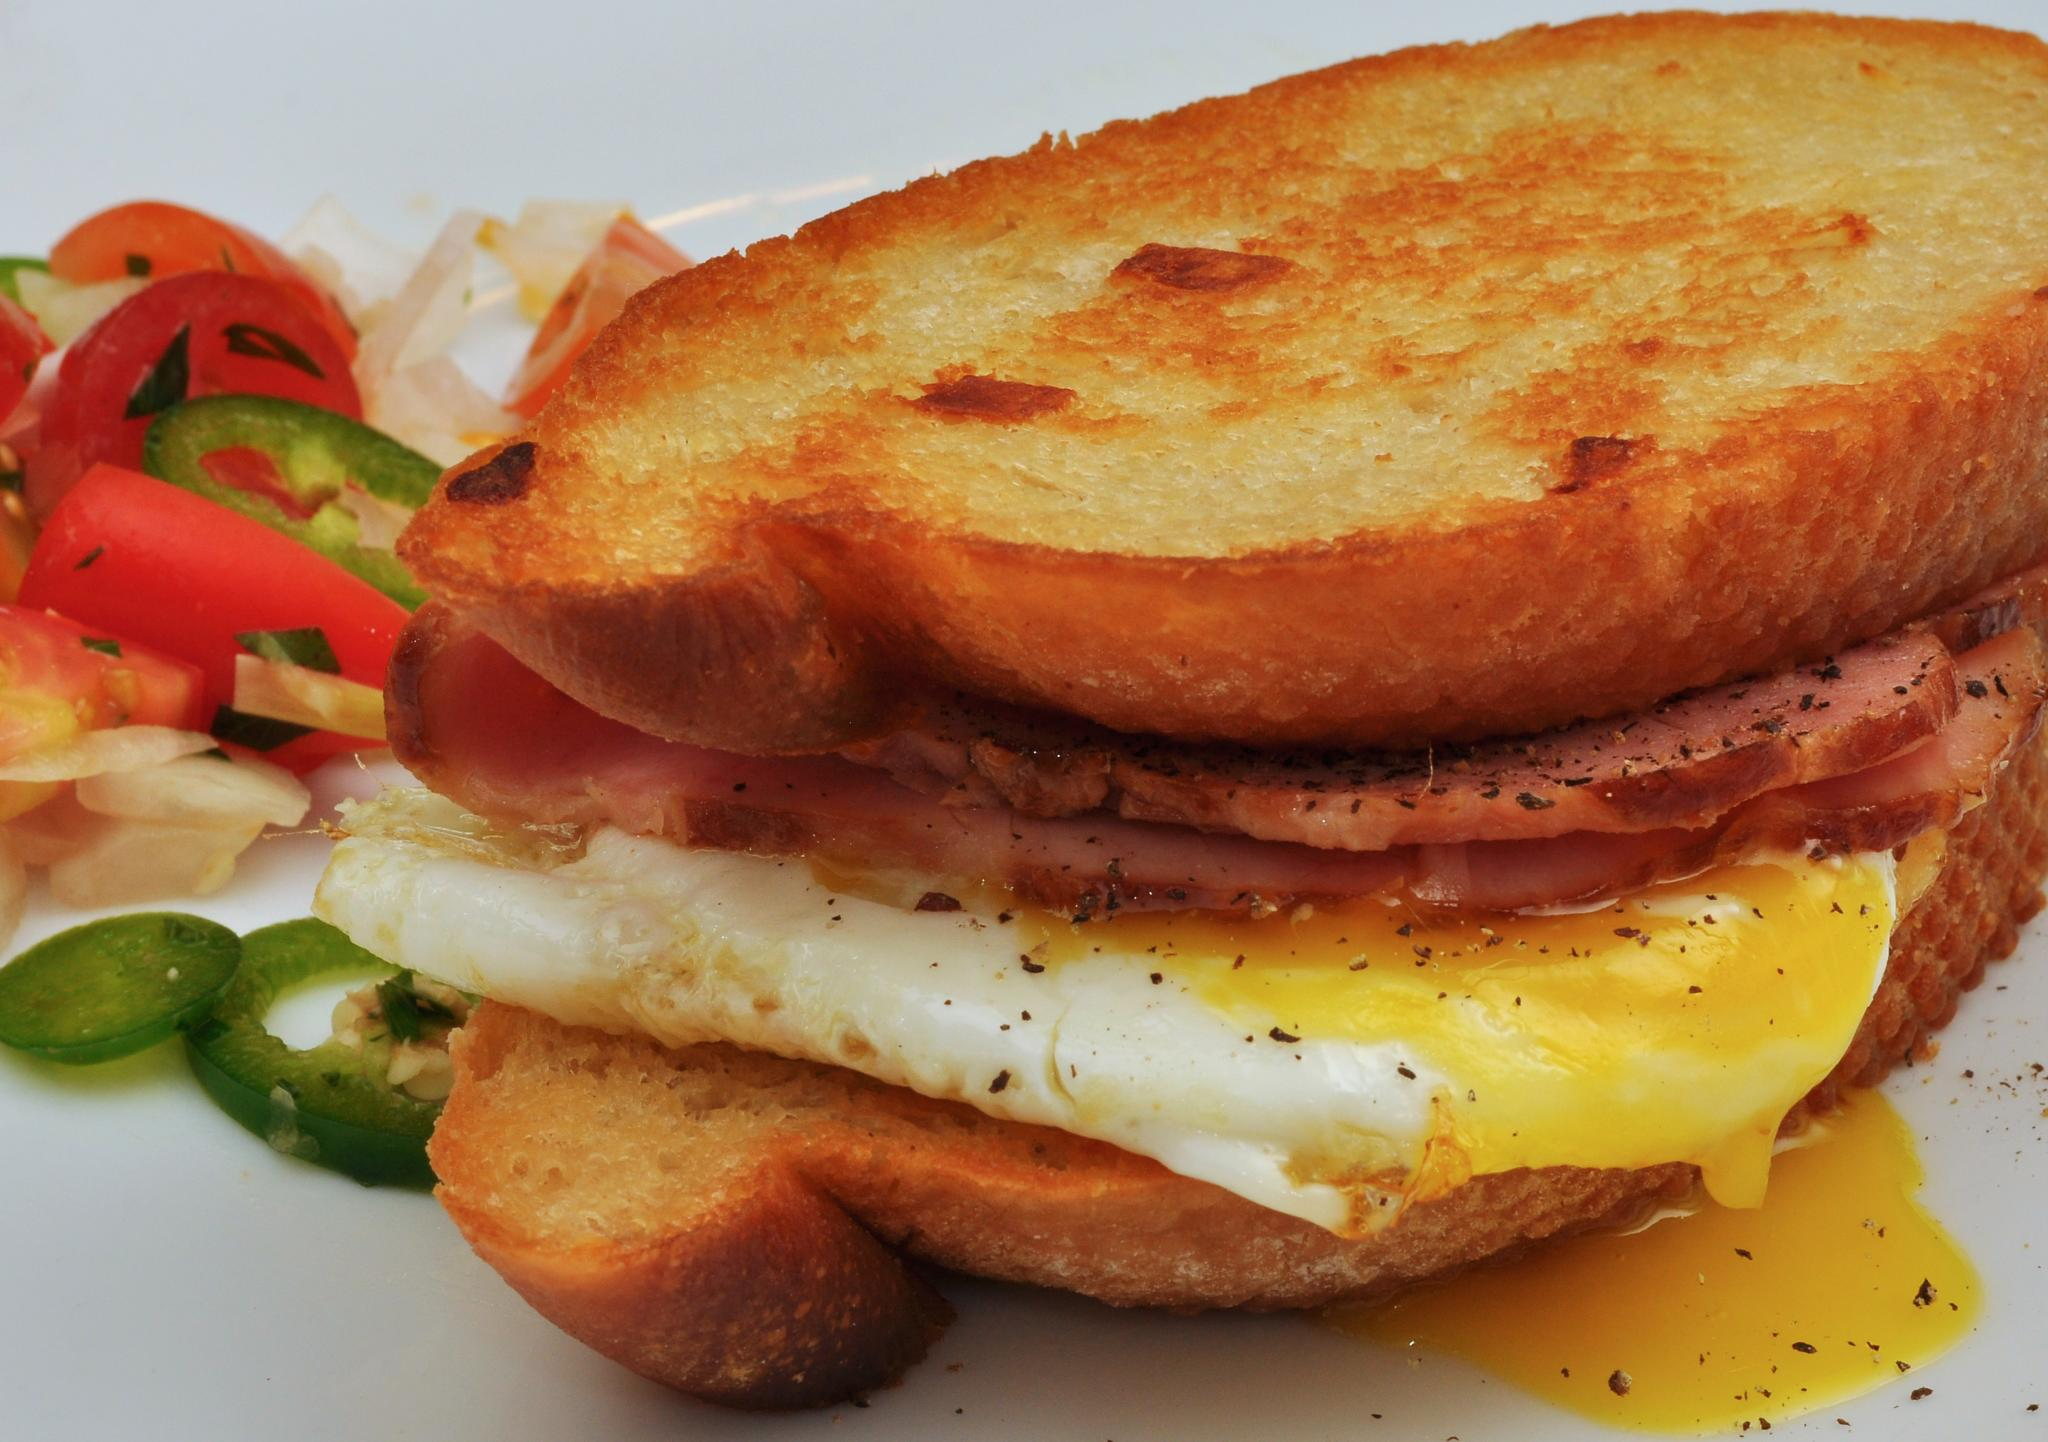 File:Breakfast sandwich.jpg - Wikipedia, the free encyclopedia